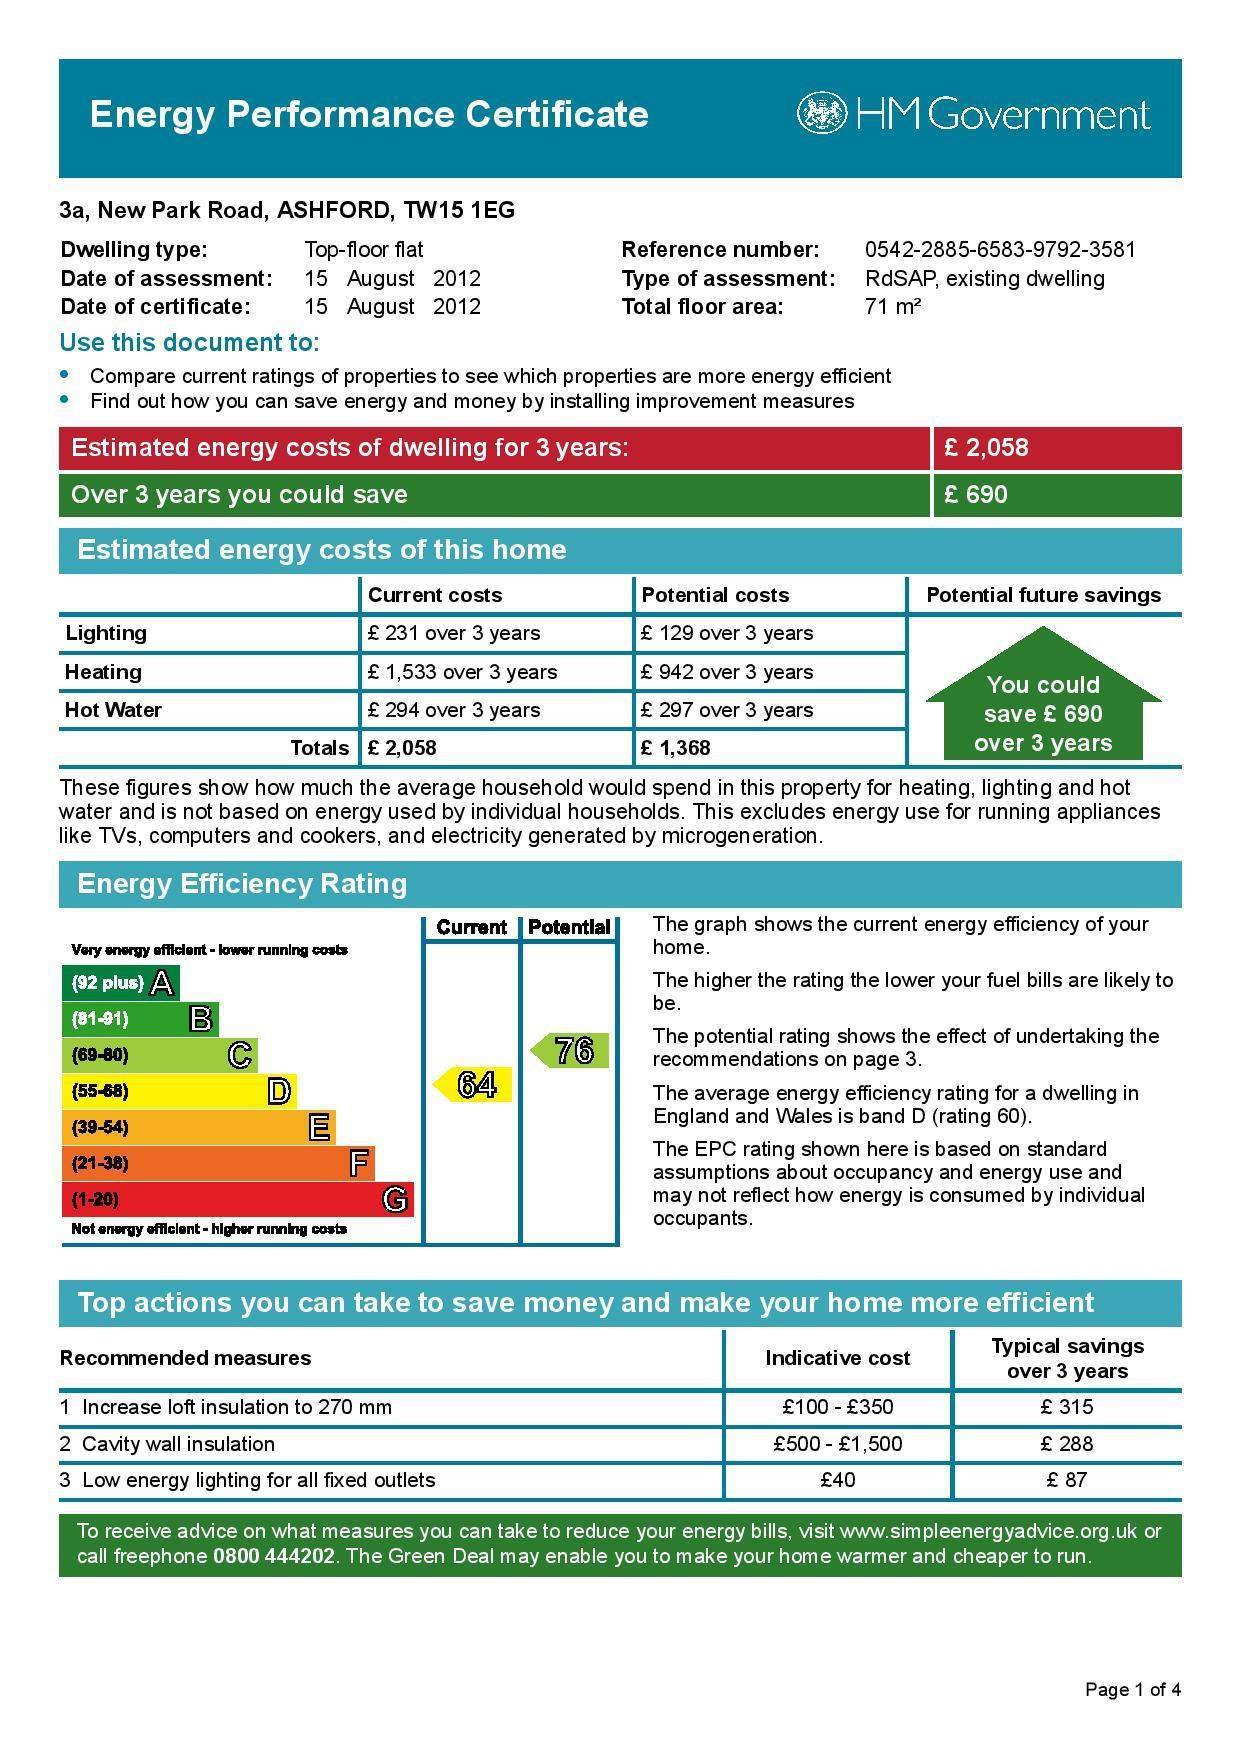 EPC Graph for 3a New Park Road, Ashford, Middlesex TW15 1EG